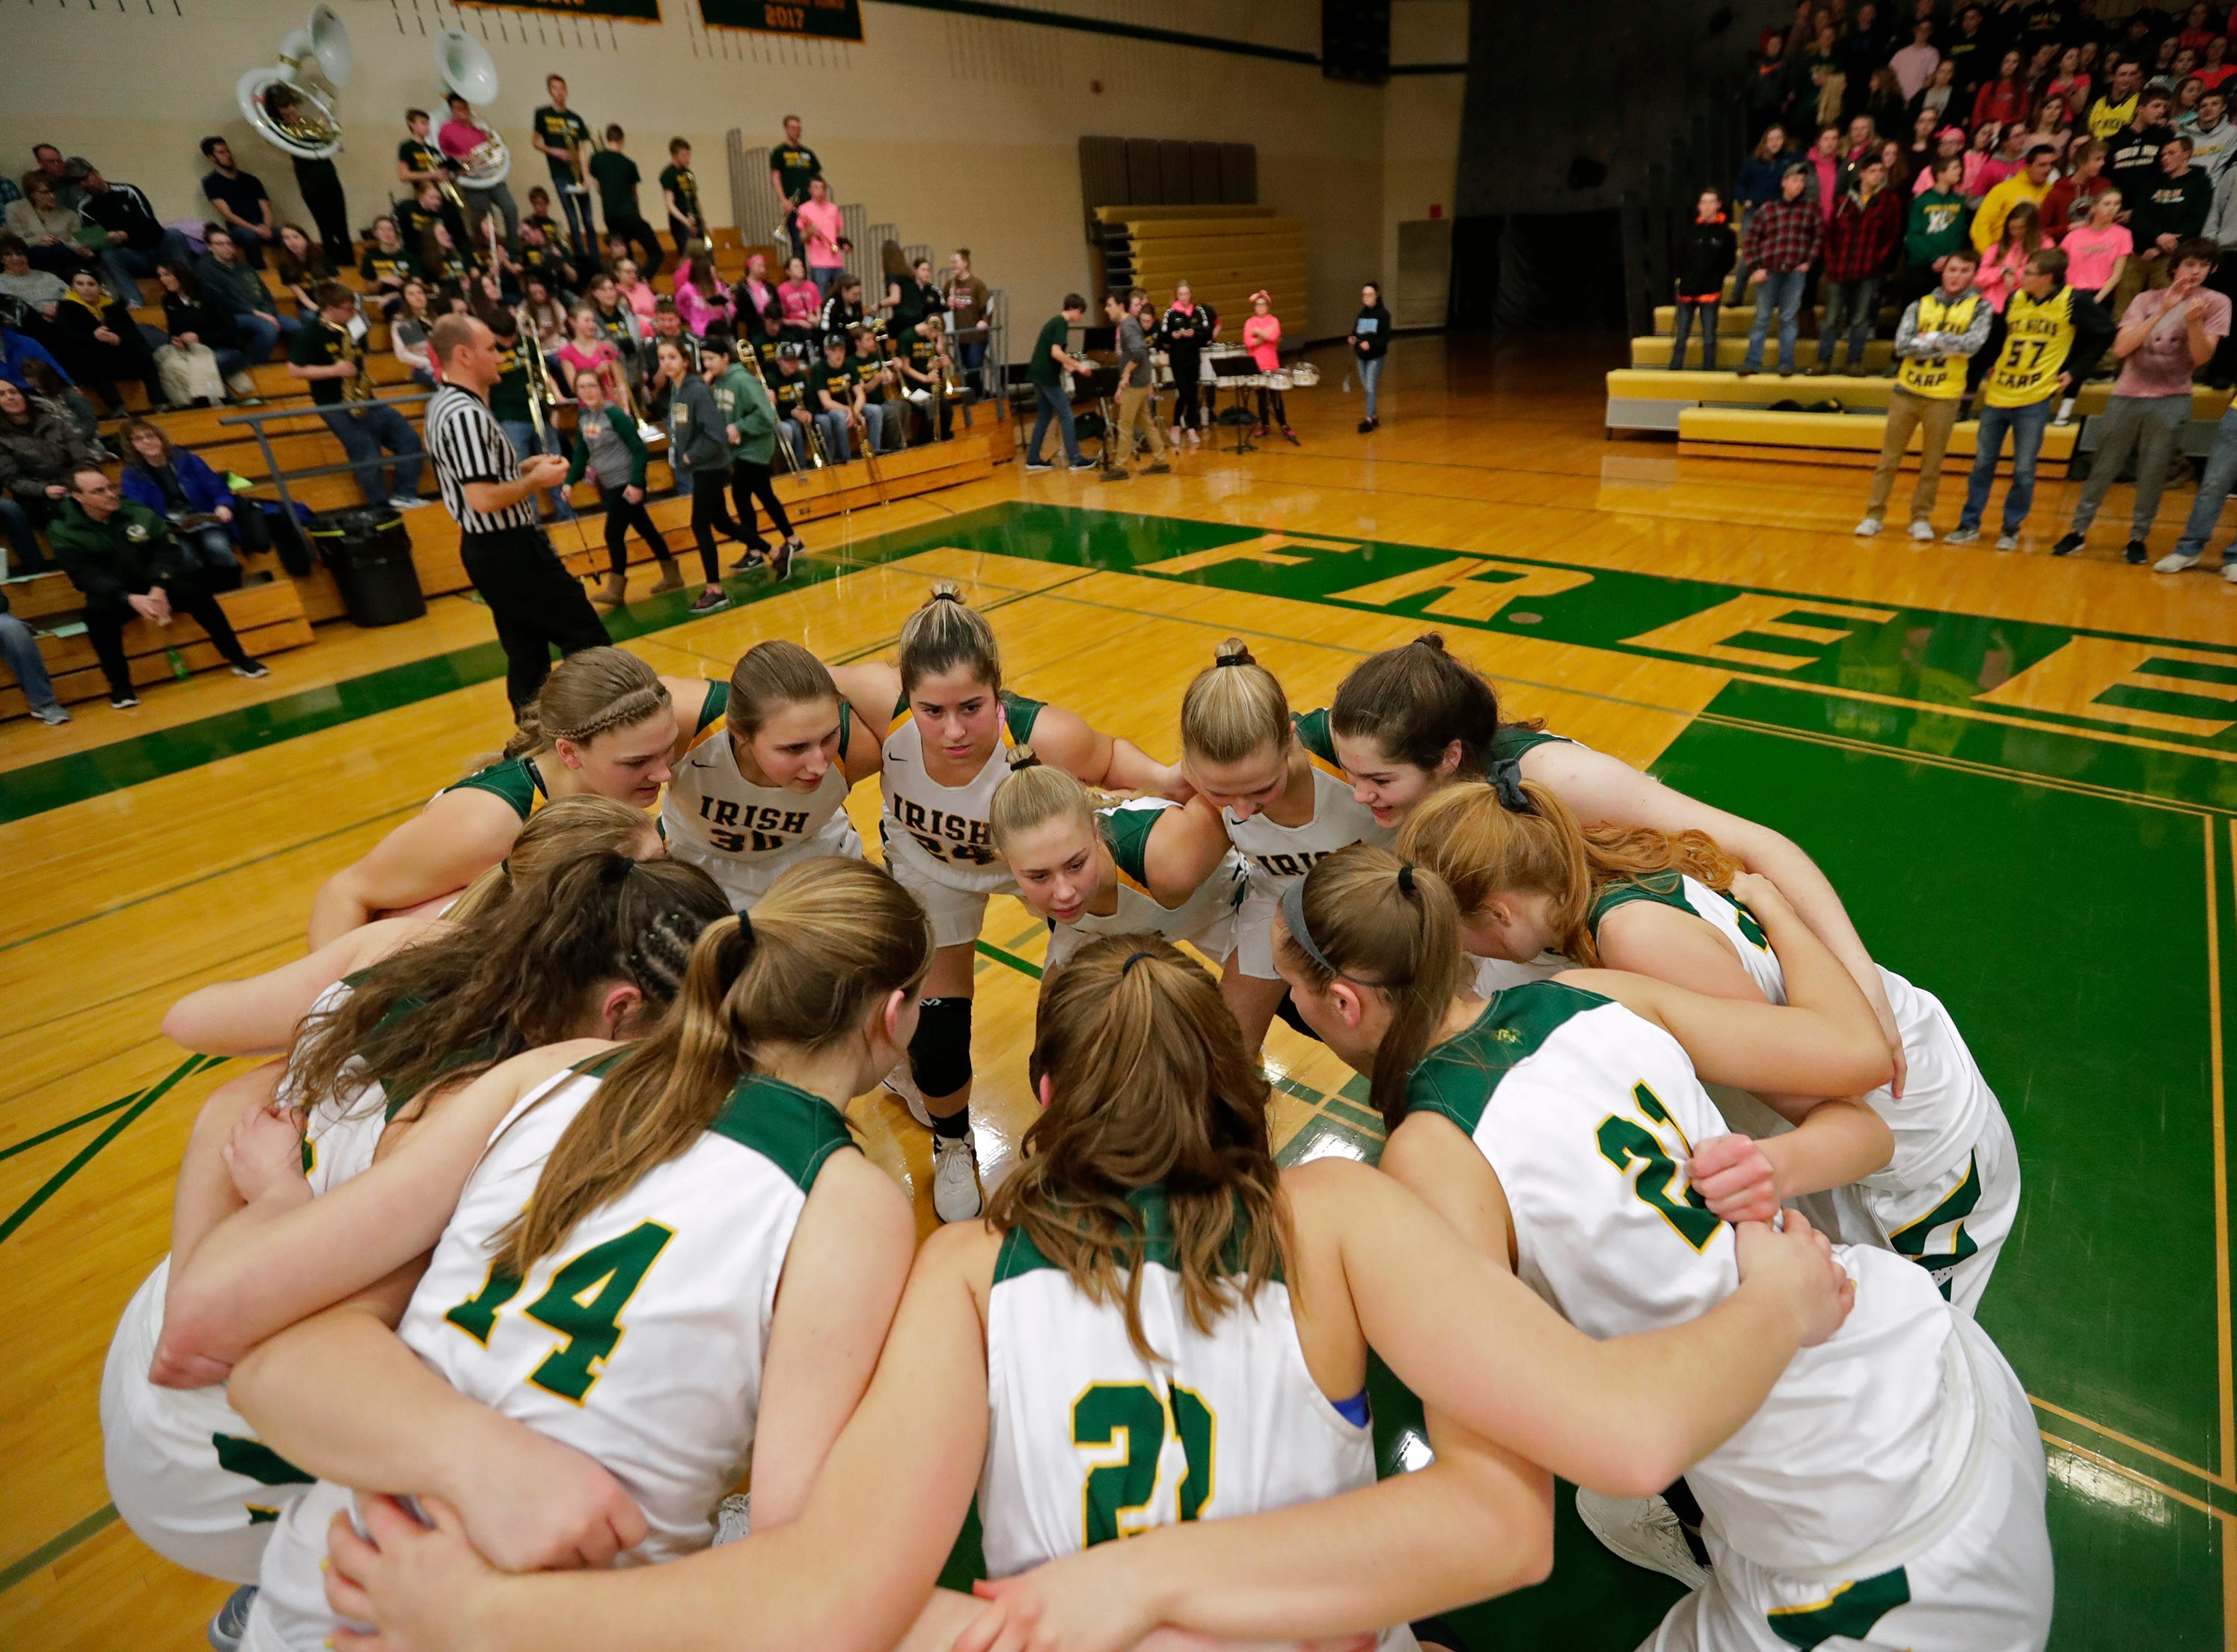 Freedom High School's gather moments before tip off against Luxemburg-Casco High School during their girls basketball game Thursday, January 24, 2019, in Freedom, Wis. 